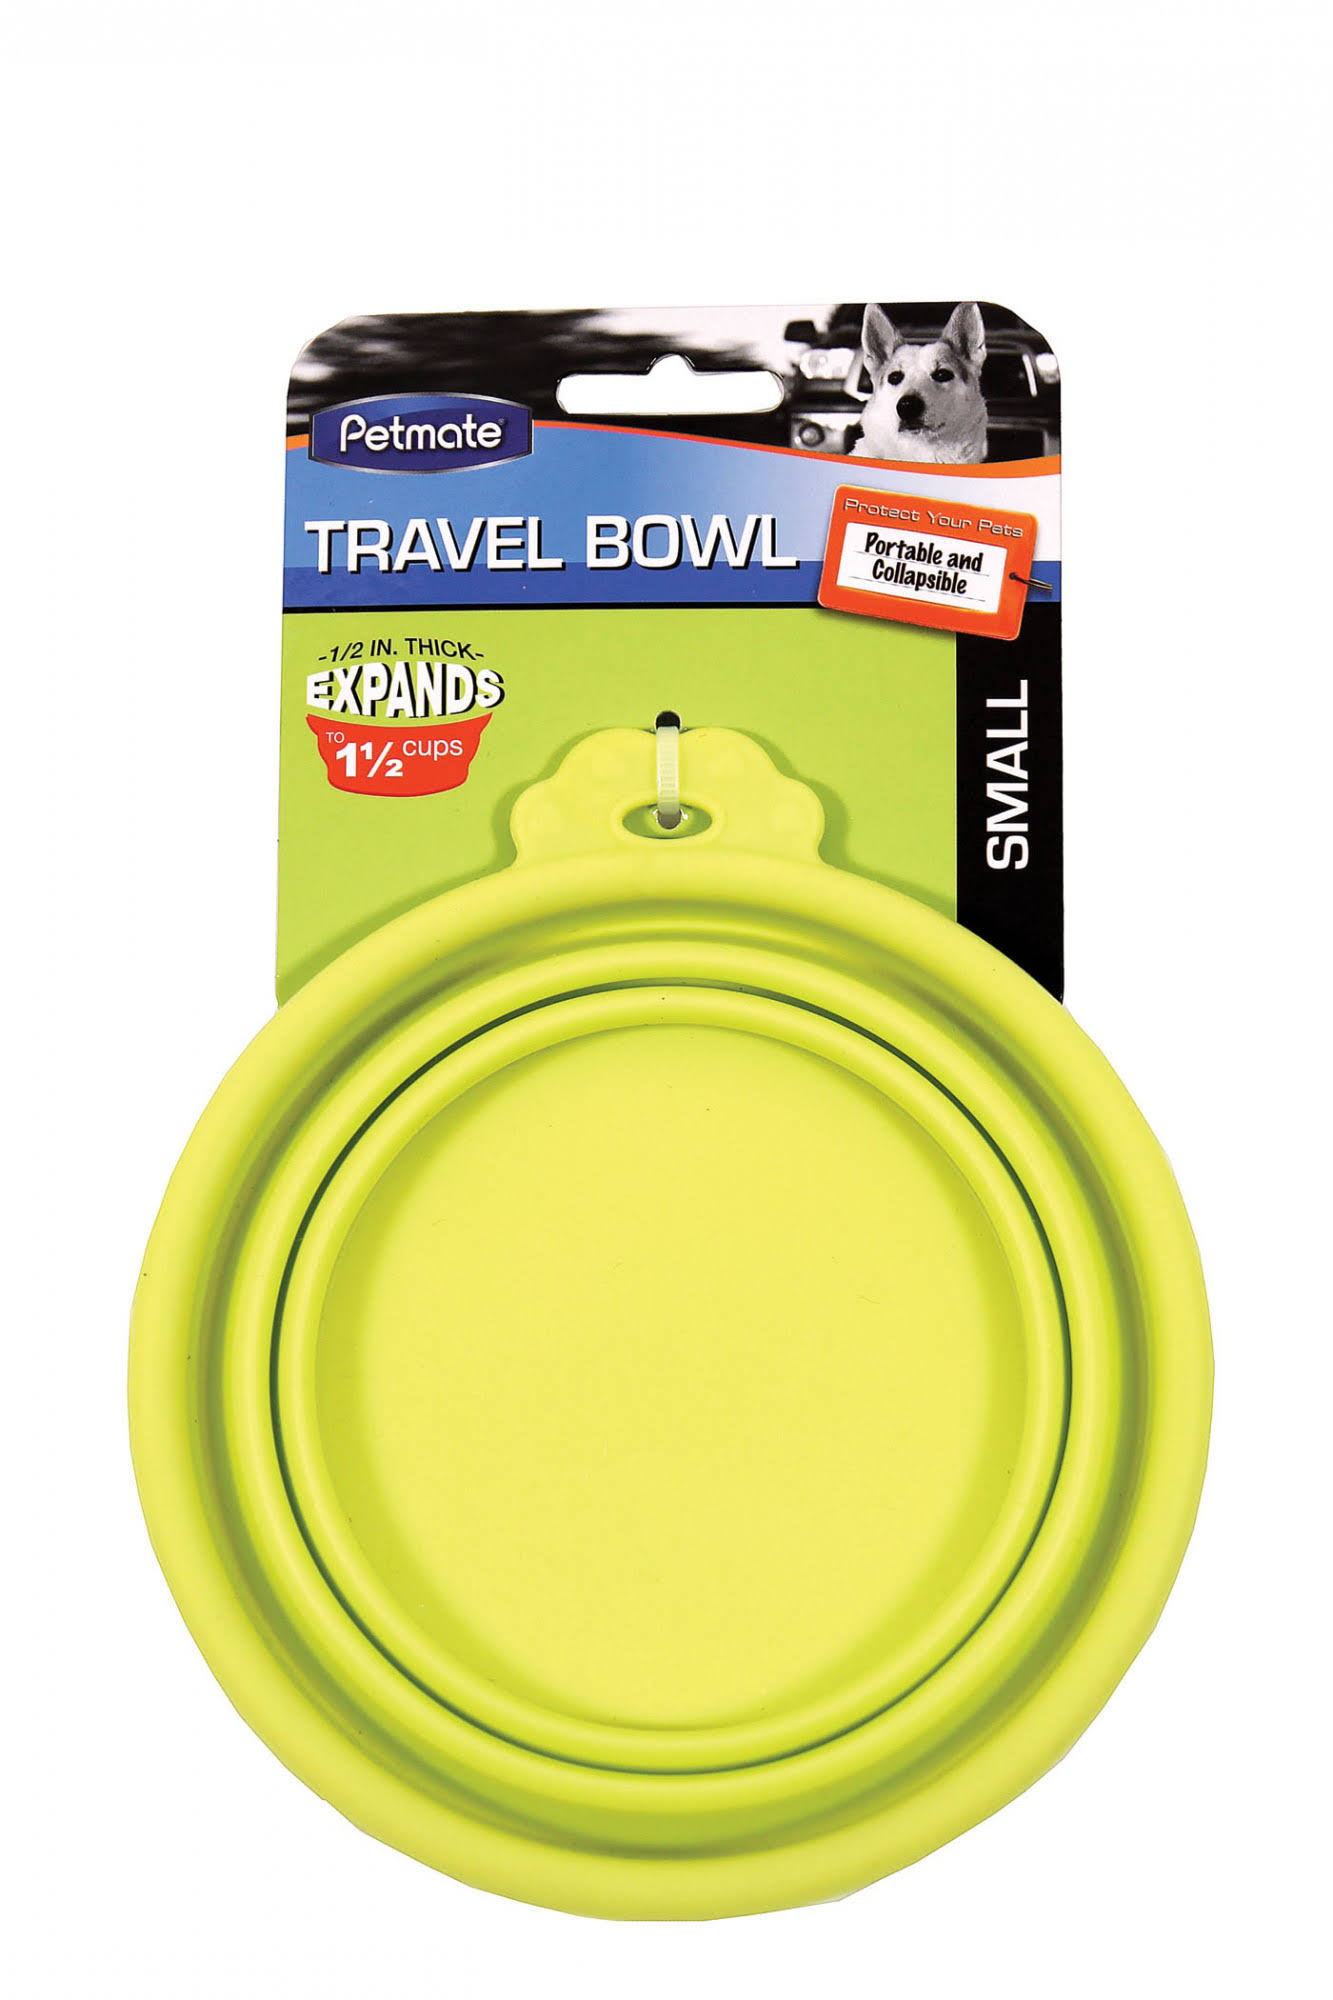 Petmate Travel Bowl for Dogs and Cats - Green, Small